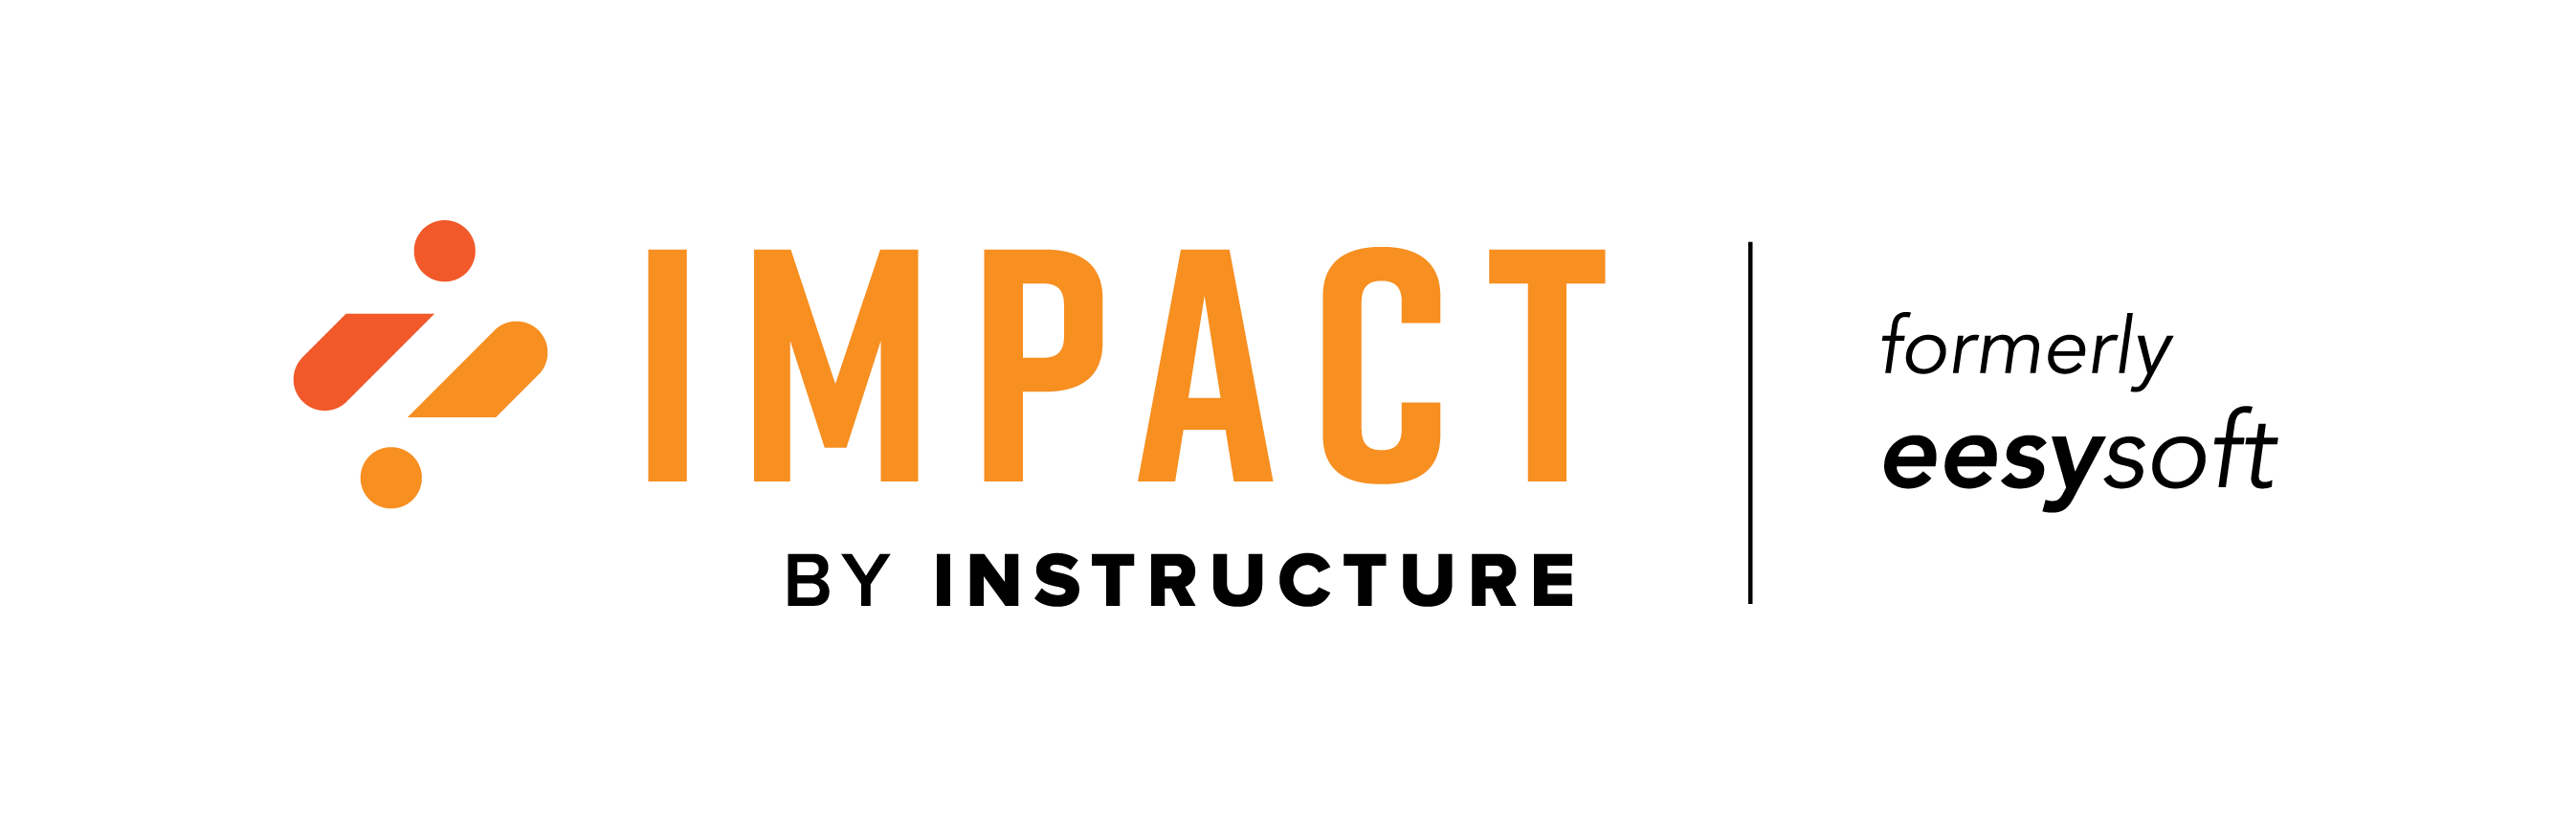 Impact formerly EesySoft HQ@4x-8